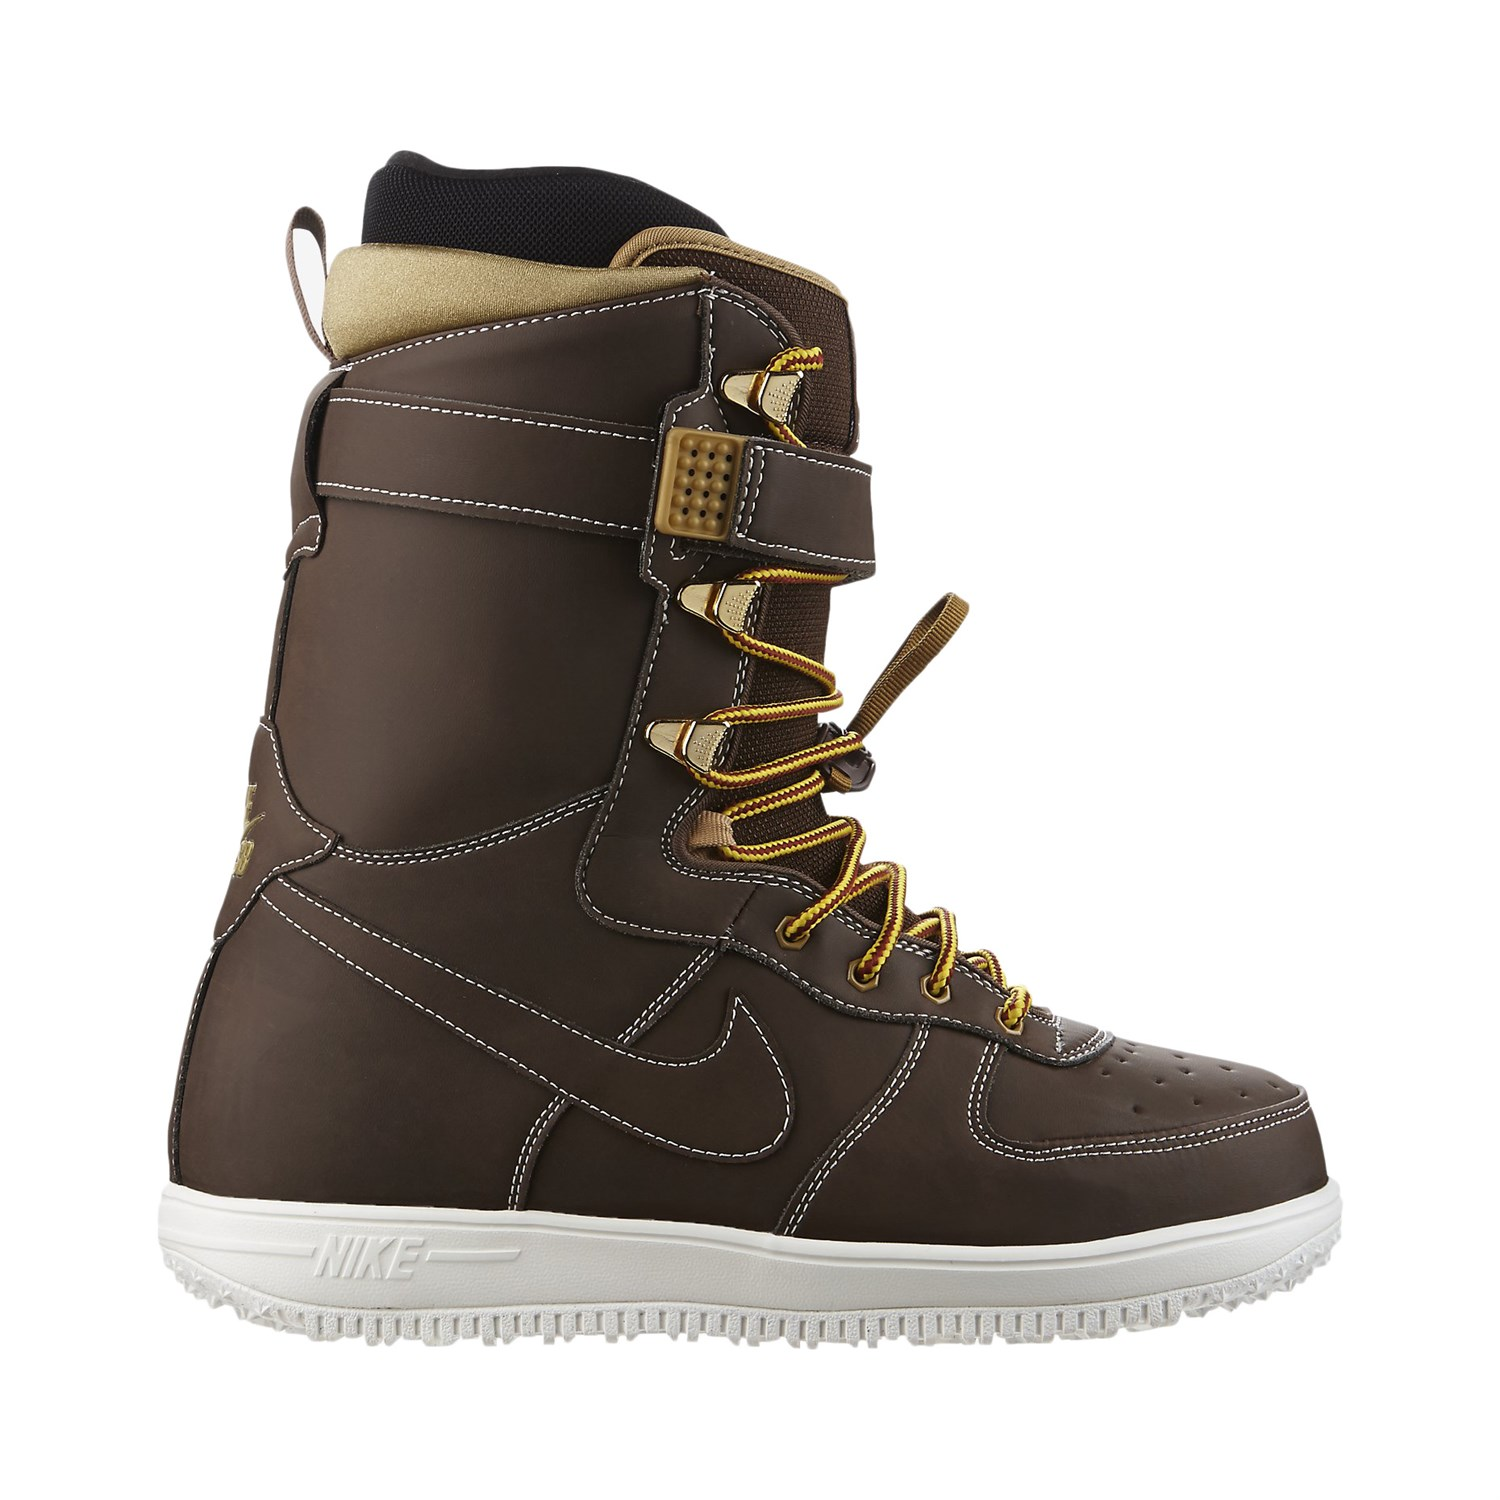 nike air force winter boots